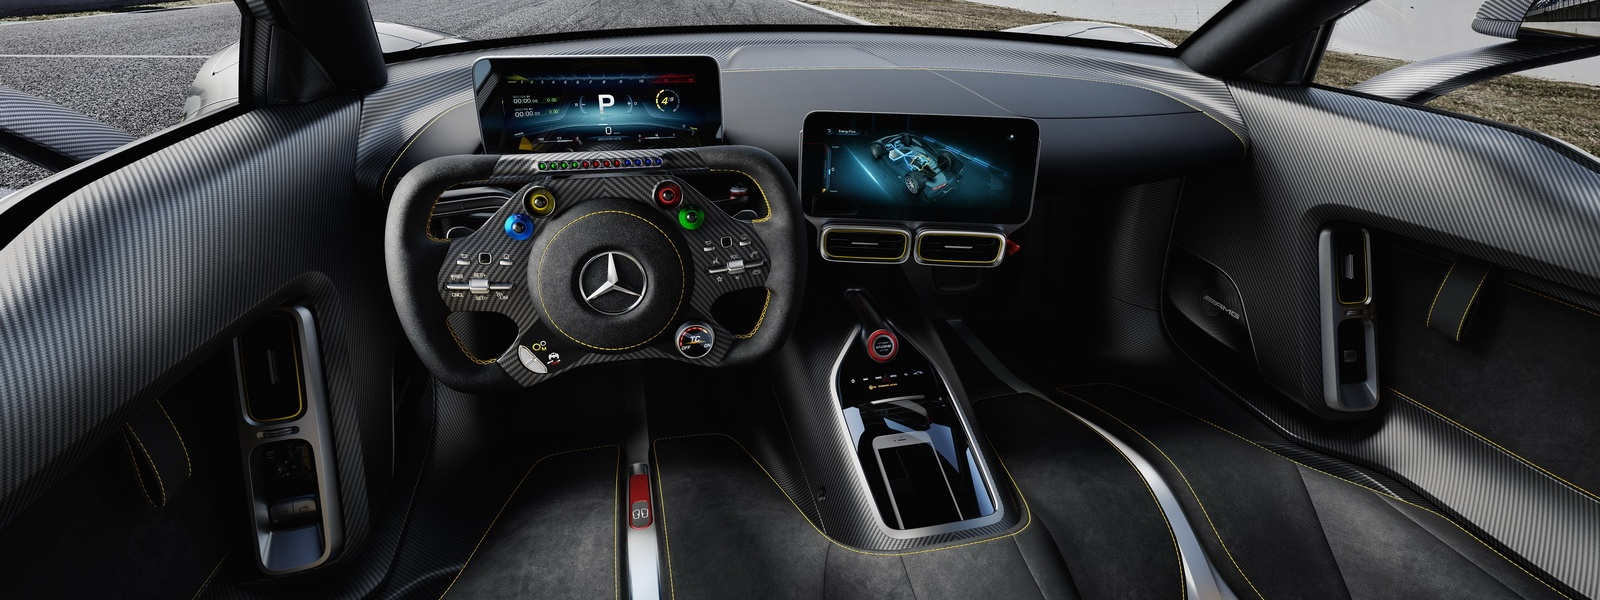 mercedes-amg-project-one-9.jpg